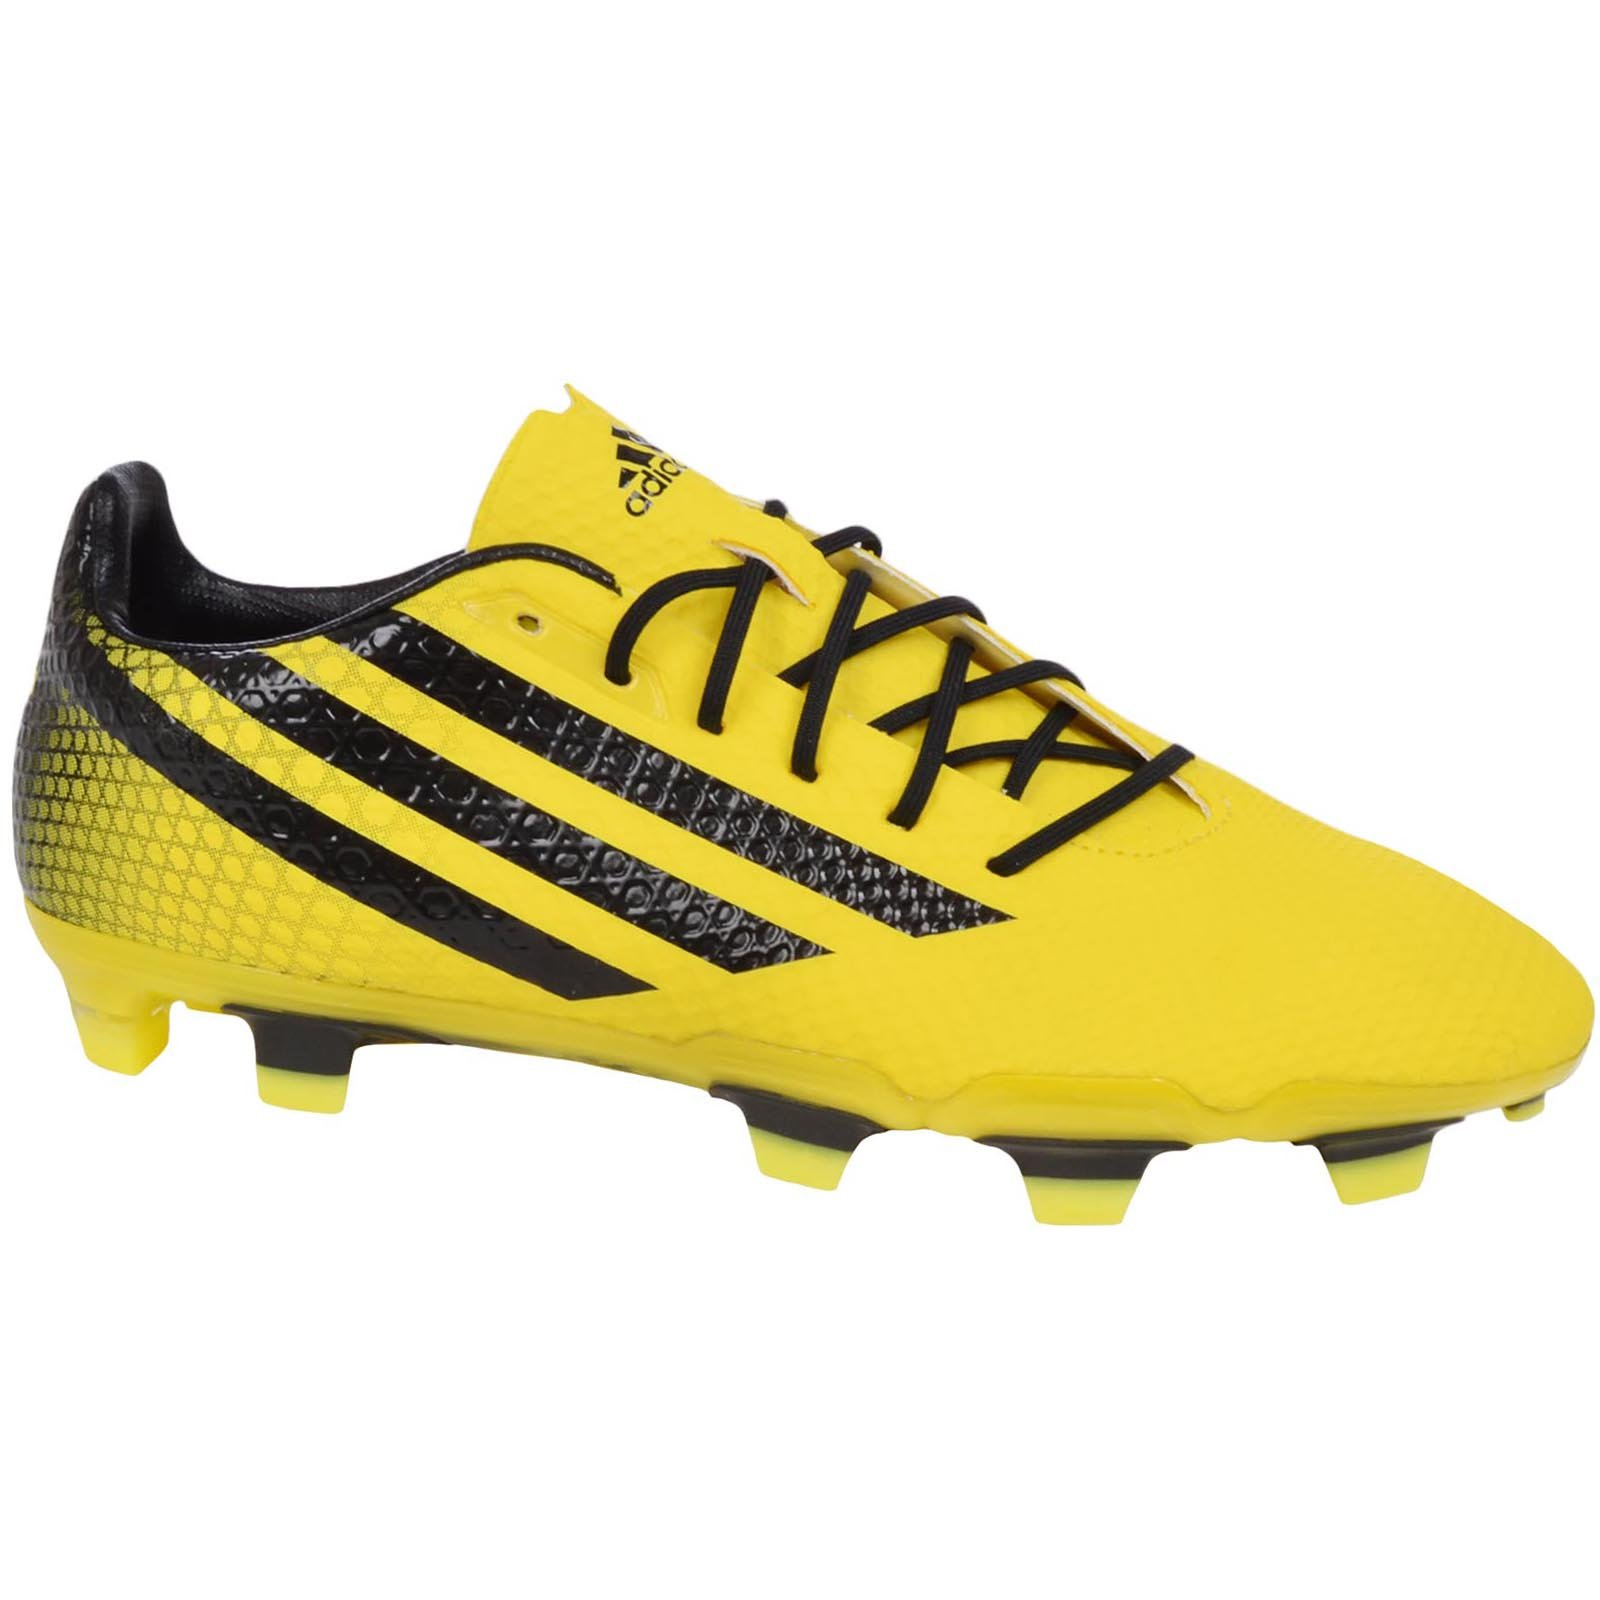 adidas Performance Mens Crazyquick Malice FG Rugby Boots - Yellow - 10US by adidas